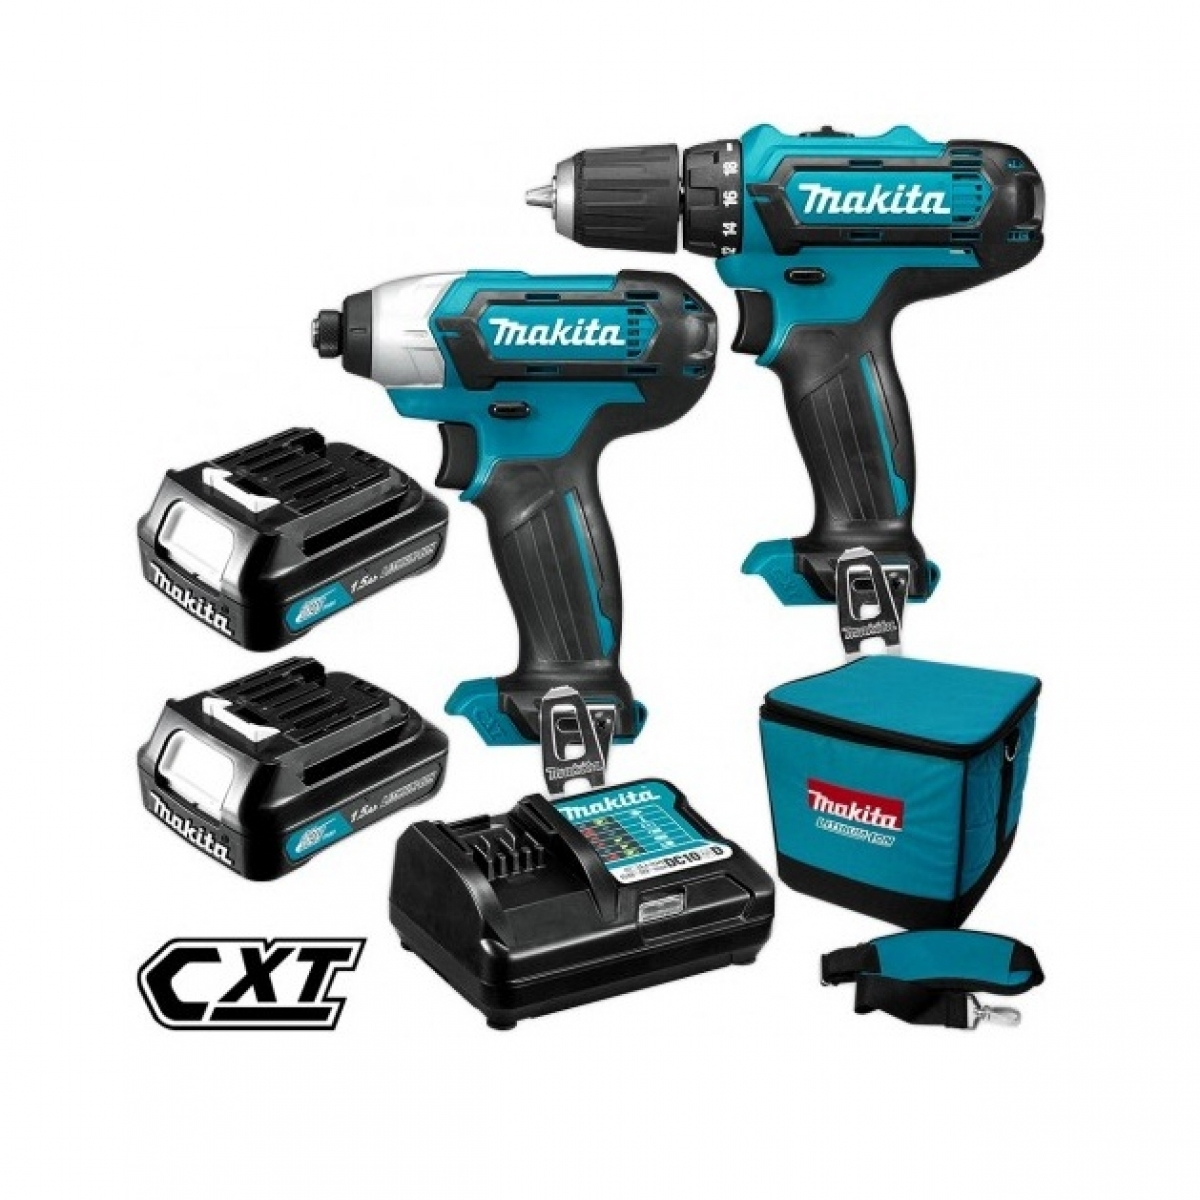 makita 12v max cordless drill driver impact driver combo kit my power tools. Black Bedroom Furniture Sets. Home Design Ideas